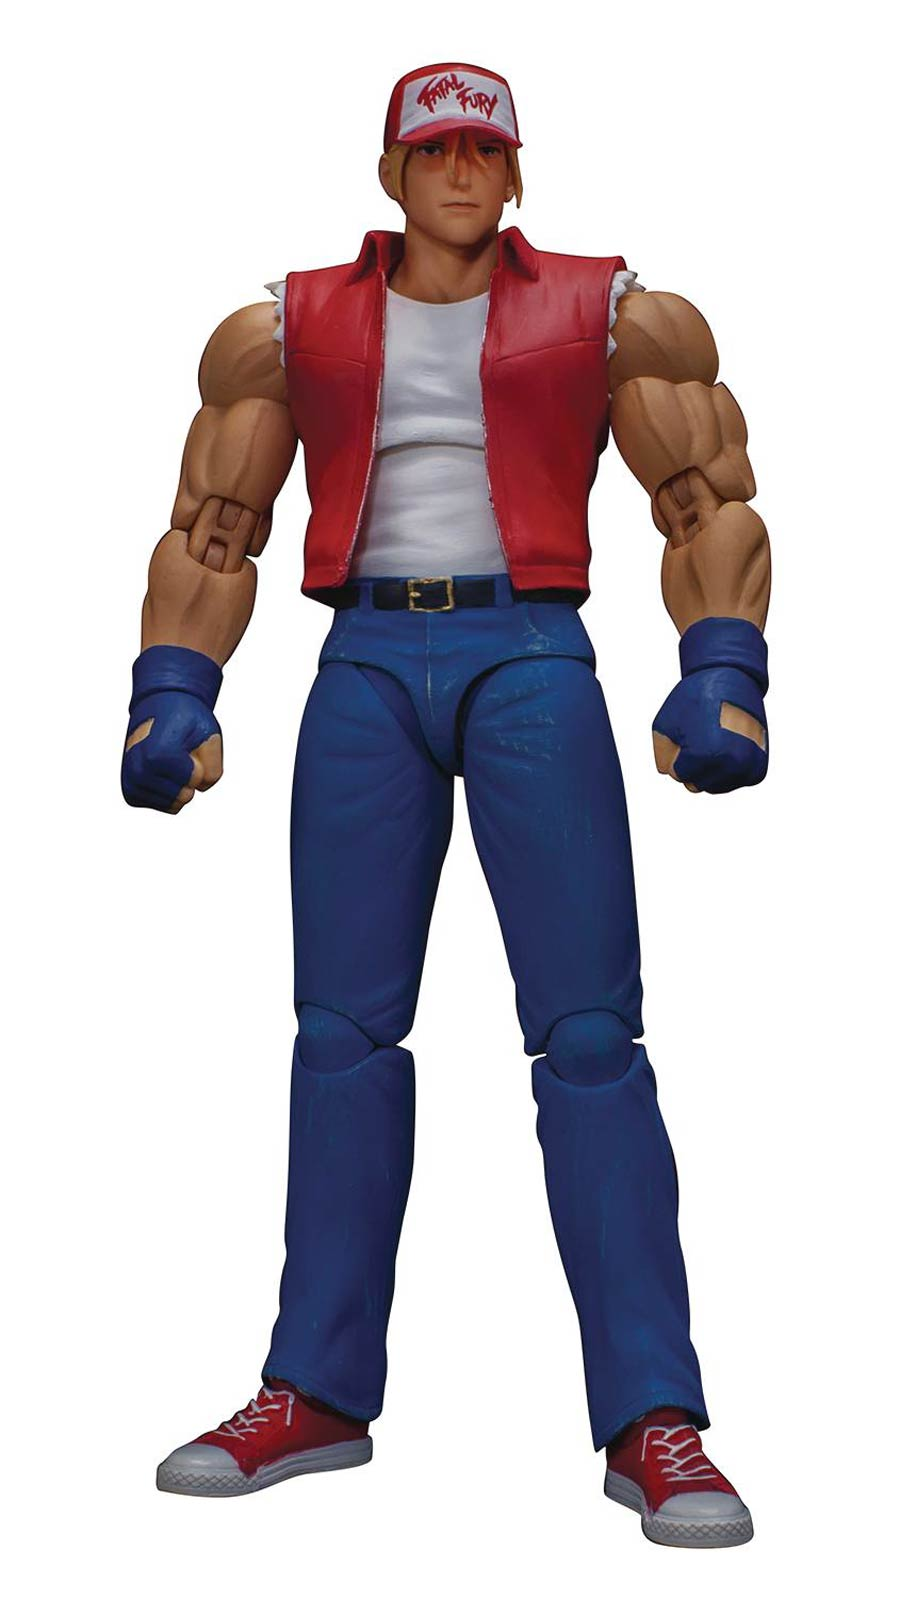 King Of Fighters 98 Ultimate Match 1/12 - Terry Bogard Action Figure